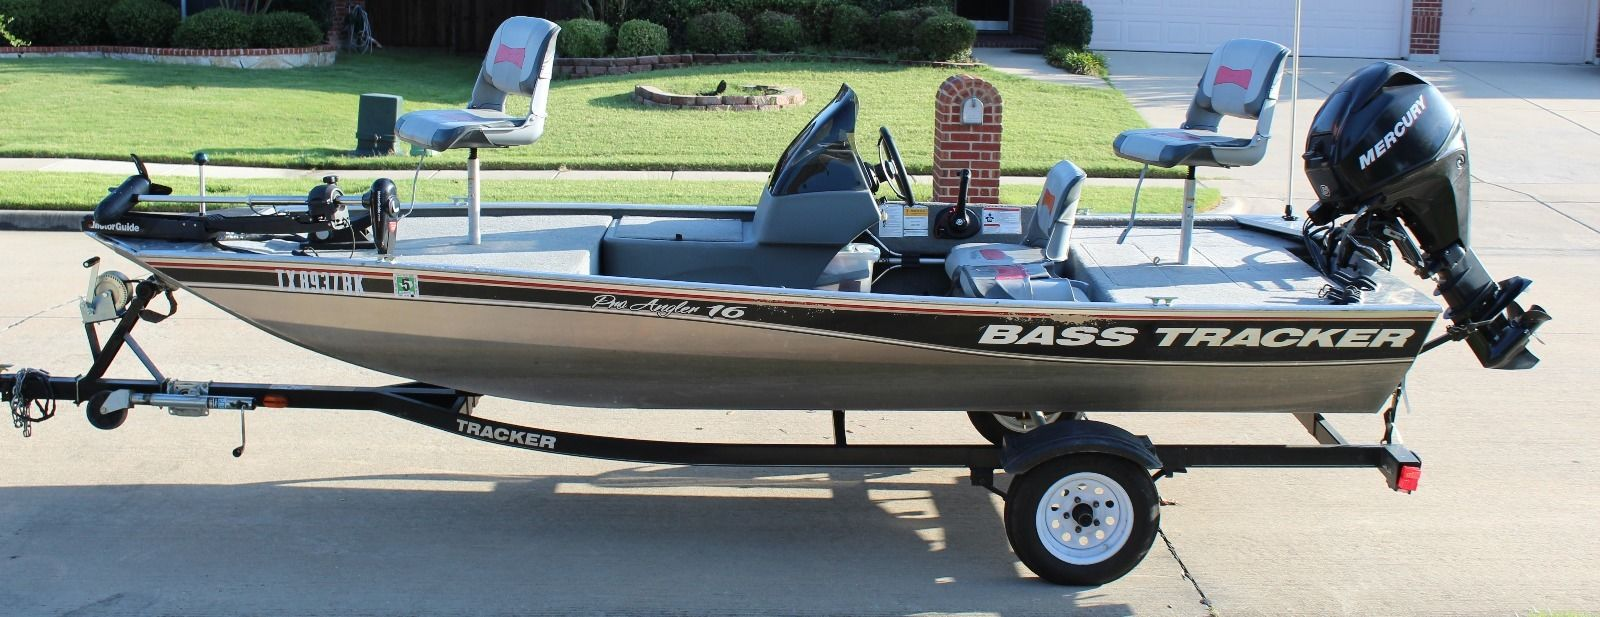 hight resolution of bass tracker 2011 for sale for 7 500 boats from usa com bass tracker boat wiring diagram